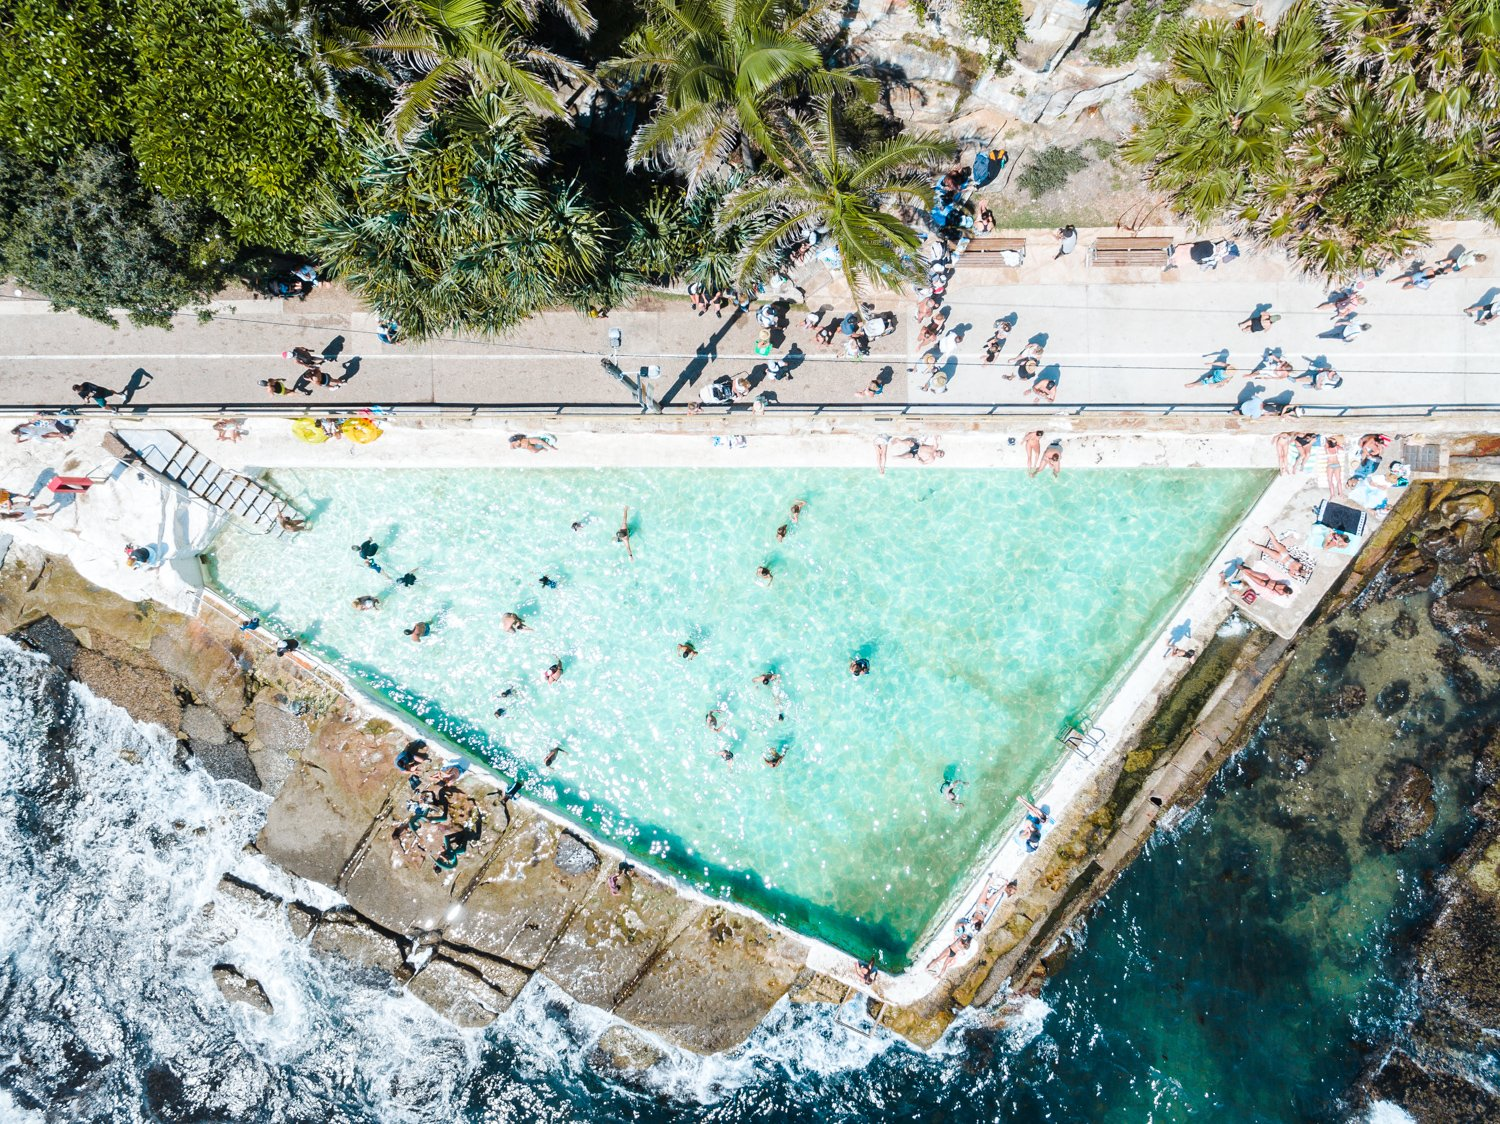 People swimming at Bower pool at Shelly Beach in Manly from above